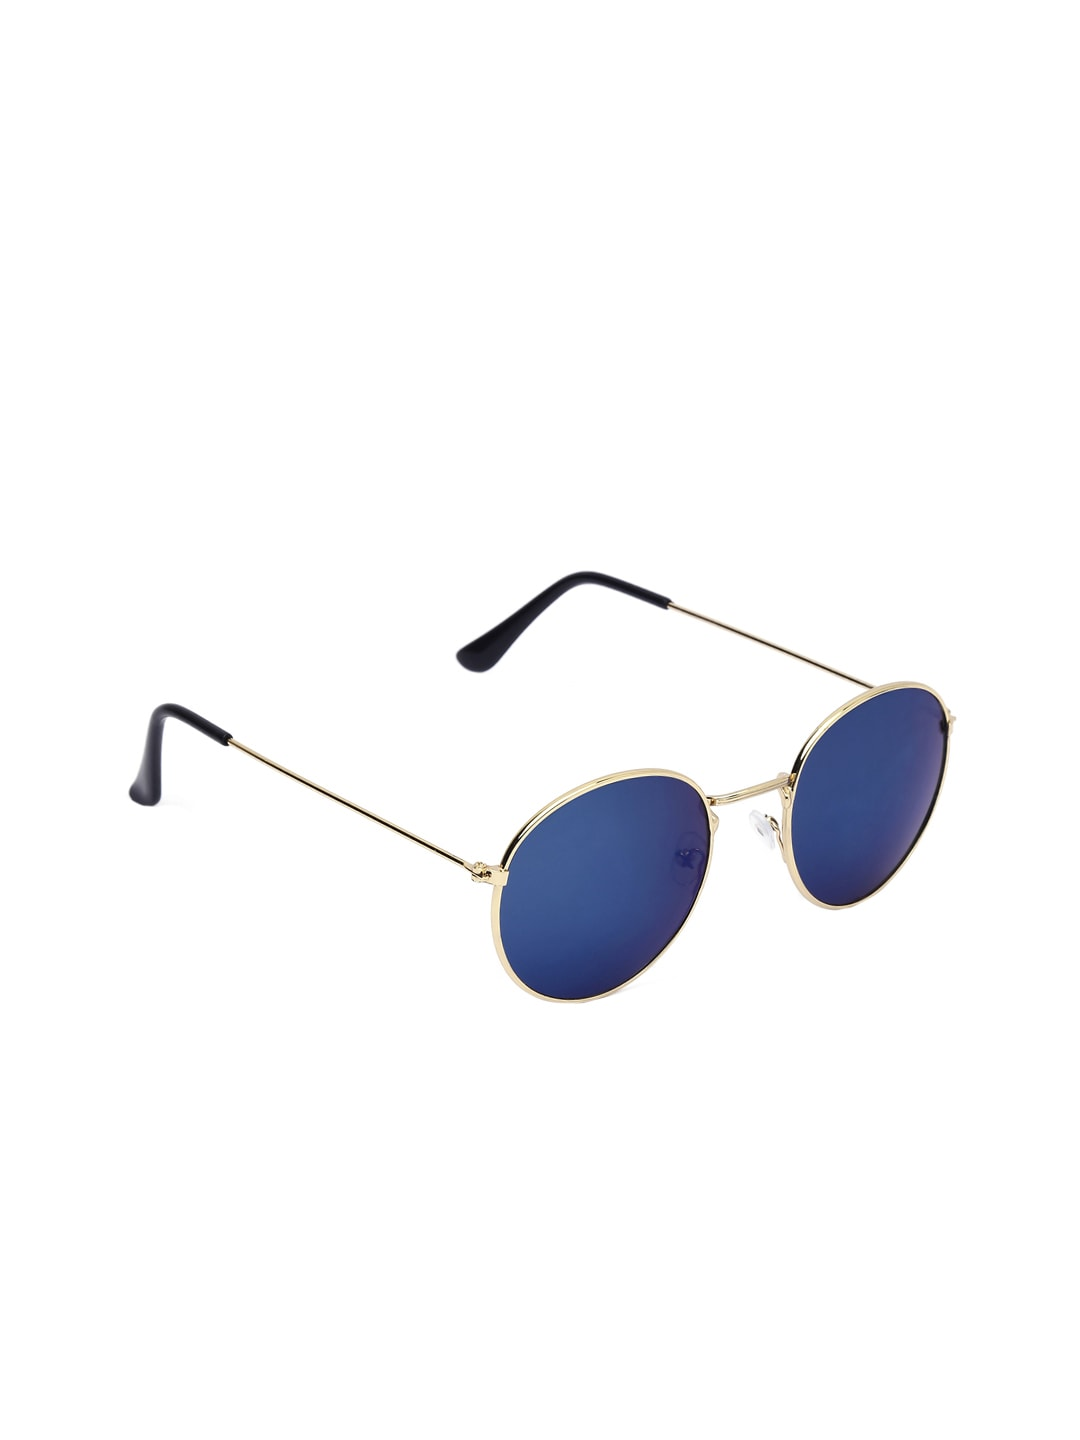 ad7d5772f Sunglasses For Men - Buy Mens Sunglasses Online in India